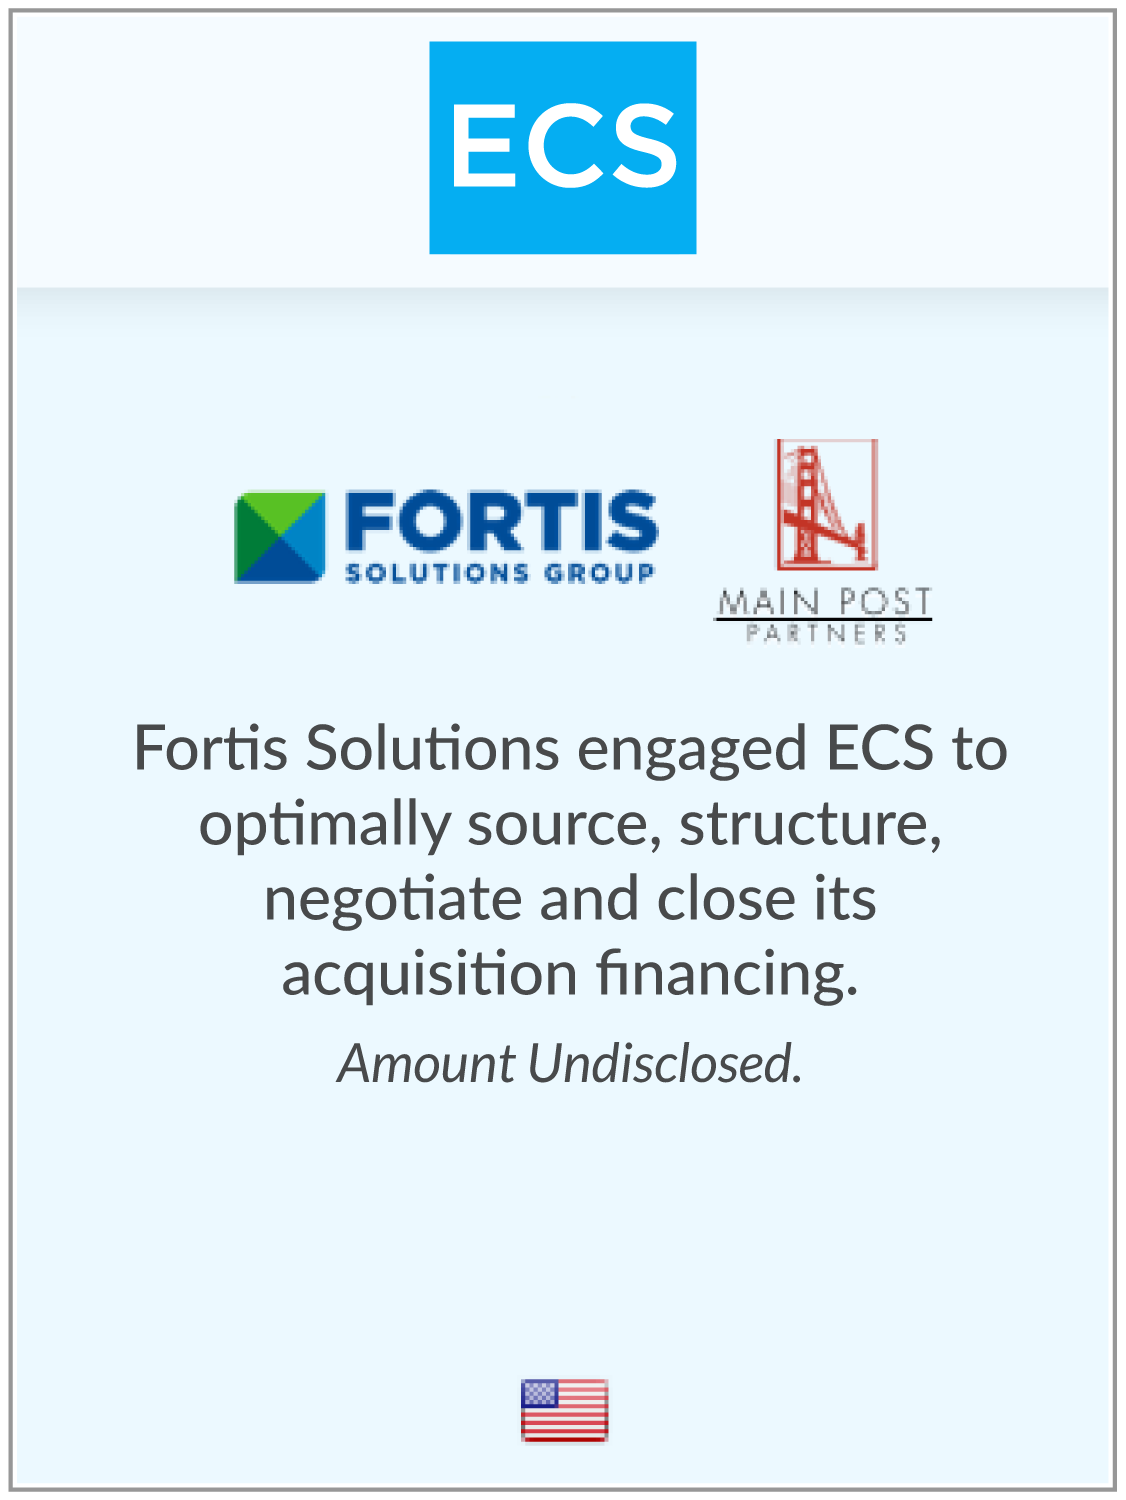 Fortis_3-04-1new.png